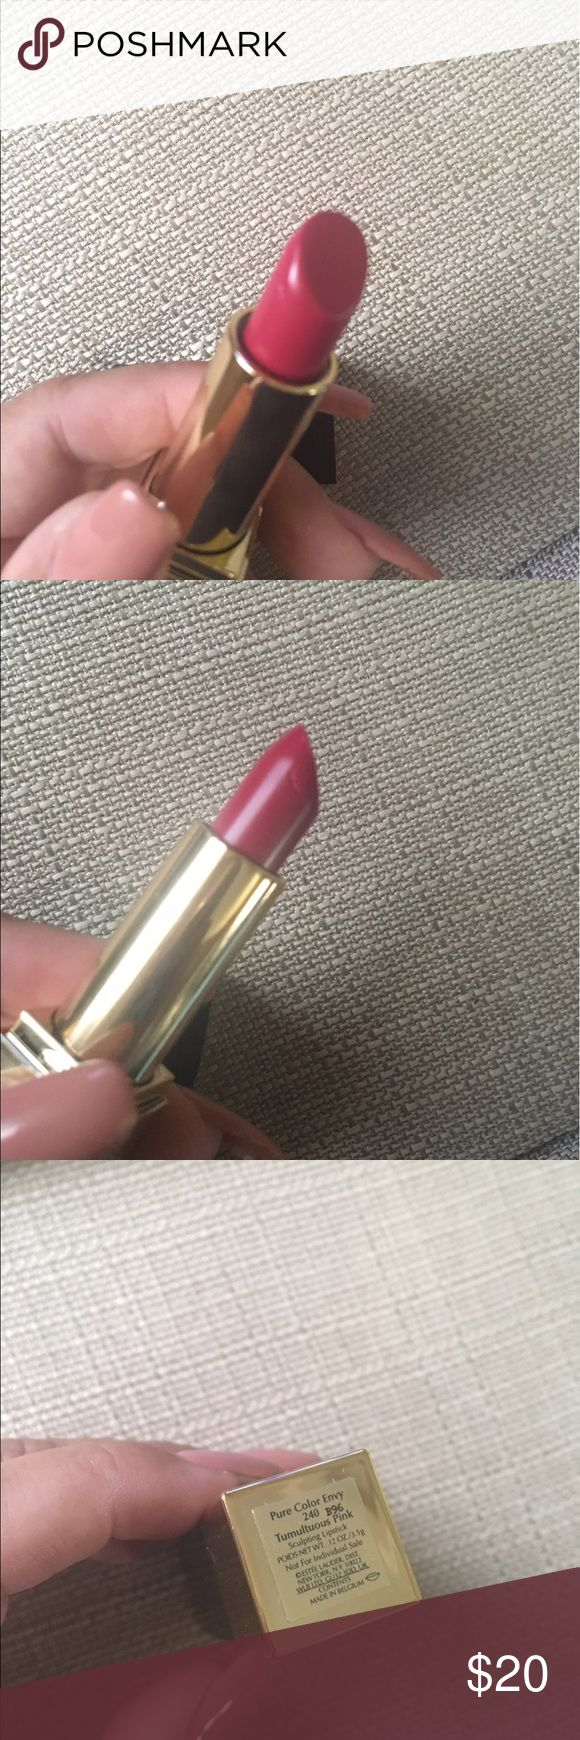 Estée Lauder Pure Color Envy Estée Lauder Pure Color Envy in tumultuous pink, item is brand new but when I opened you can see the tiny crease on the side, came that way but item was not used or swatched. Will ship same day payment is made. Estee Lauder Makeup Lipstick